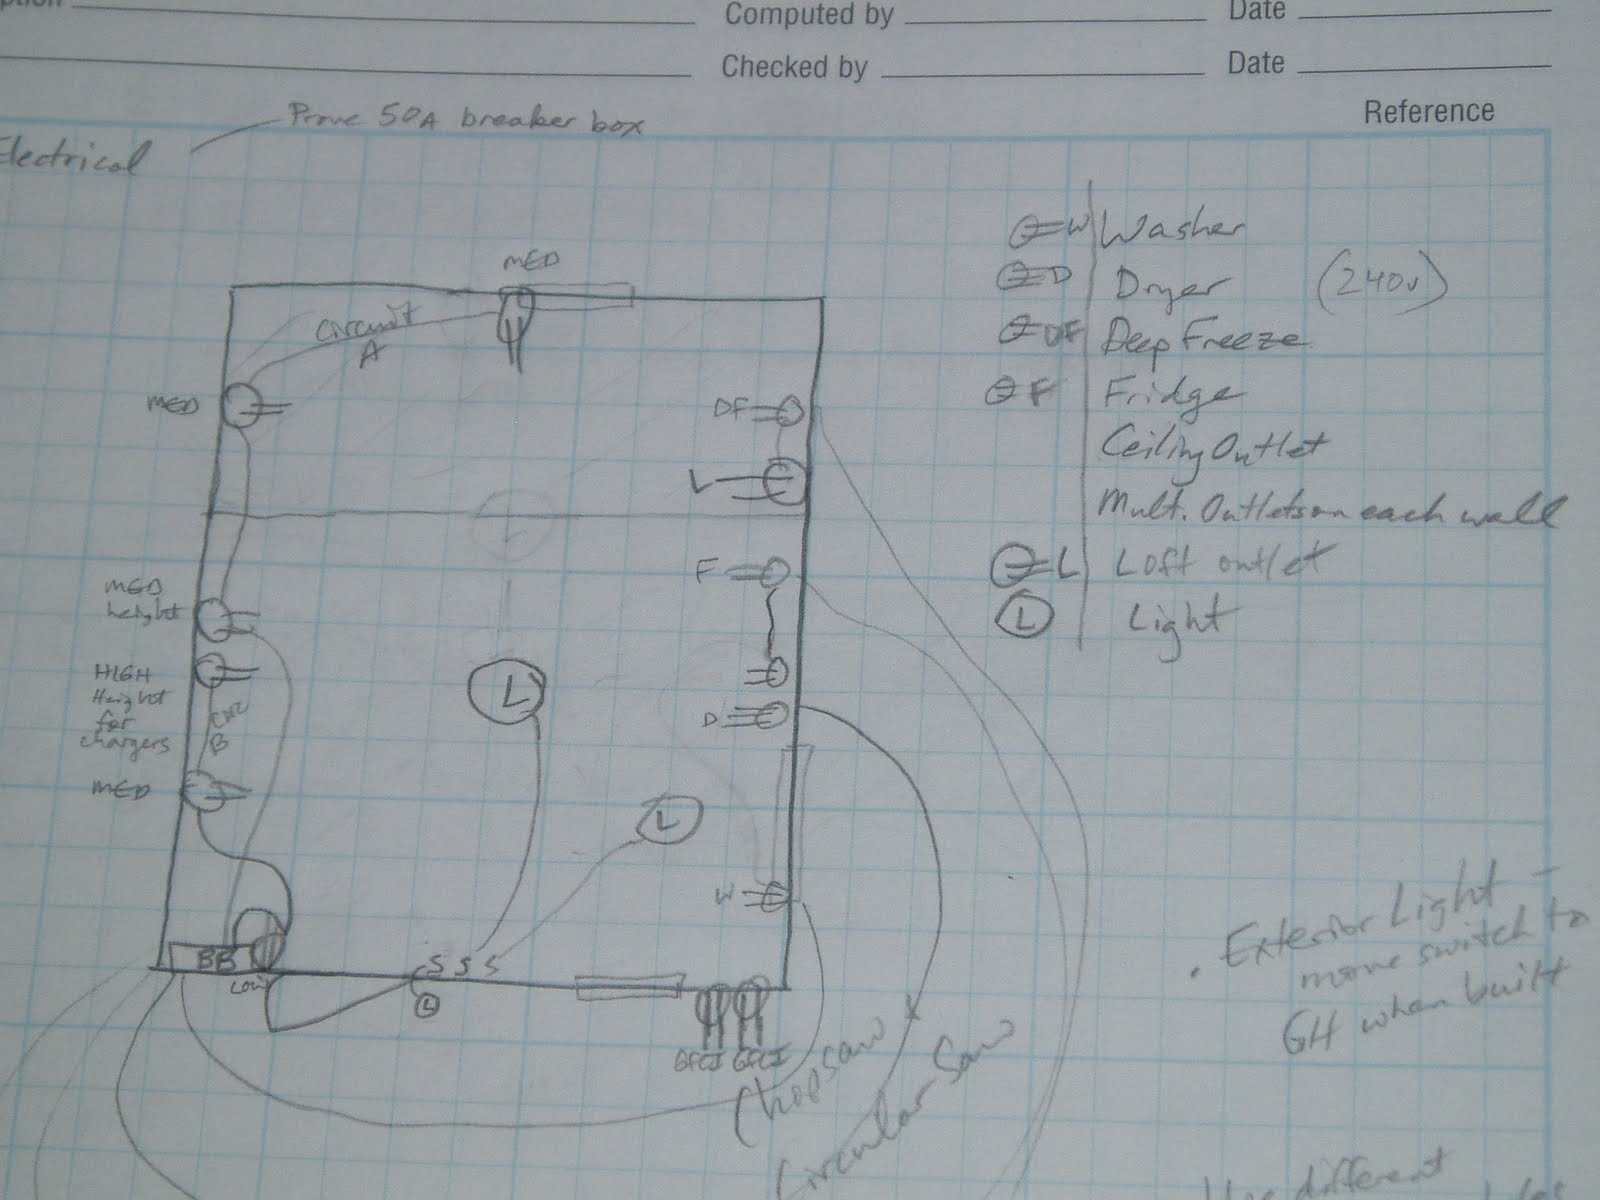 Shed Wiring Plan Morgan Homestead Diagram In My Community College Class I Learned How To Do A Layout Determine Circuits And Figure Out Many Amps The Breaker Box Needs Be Able